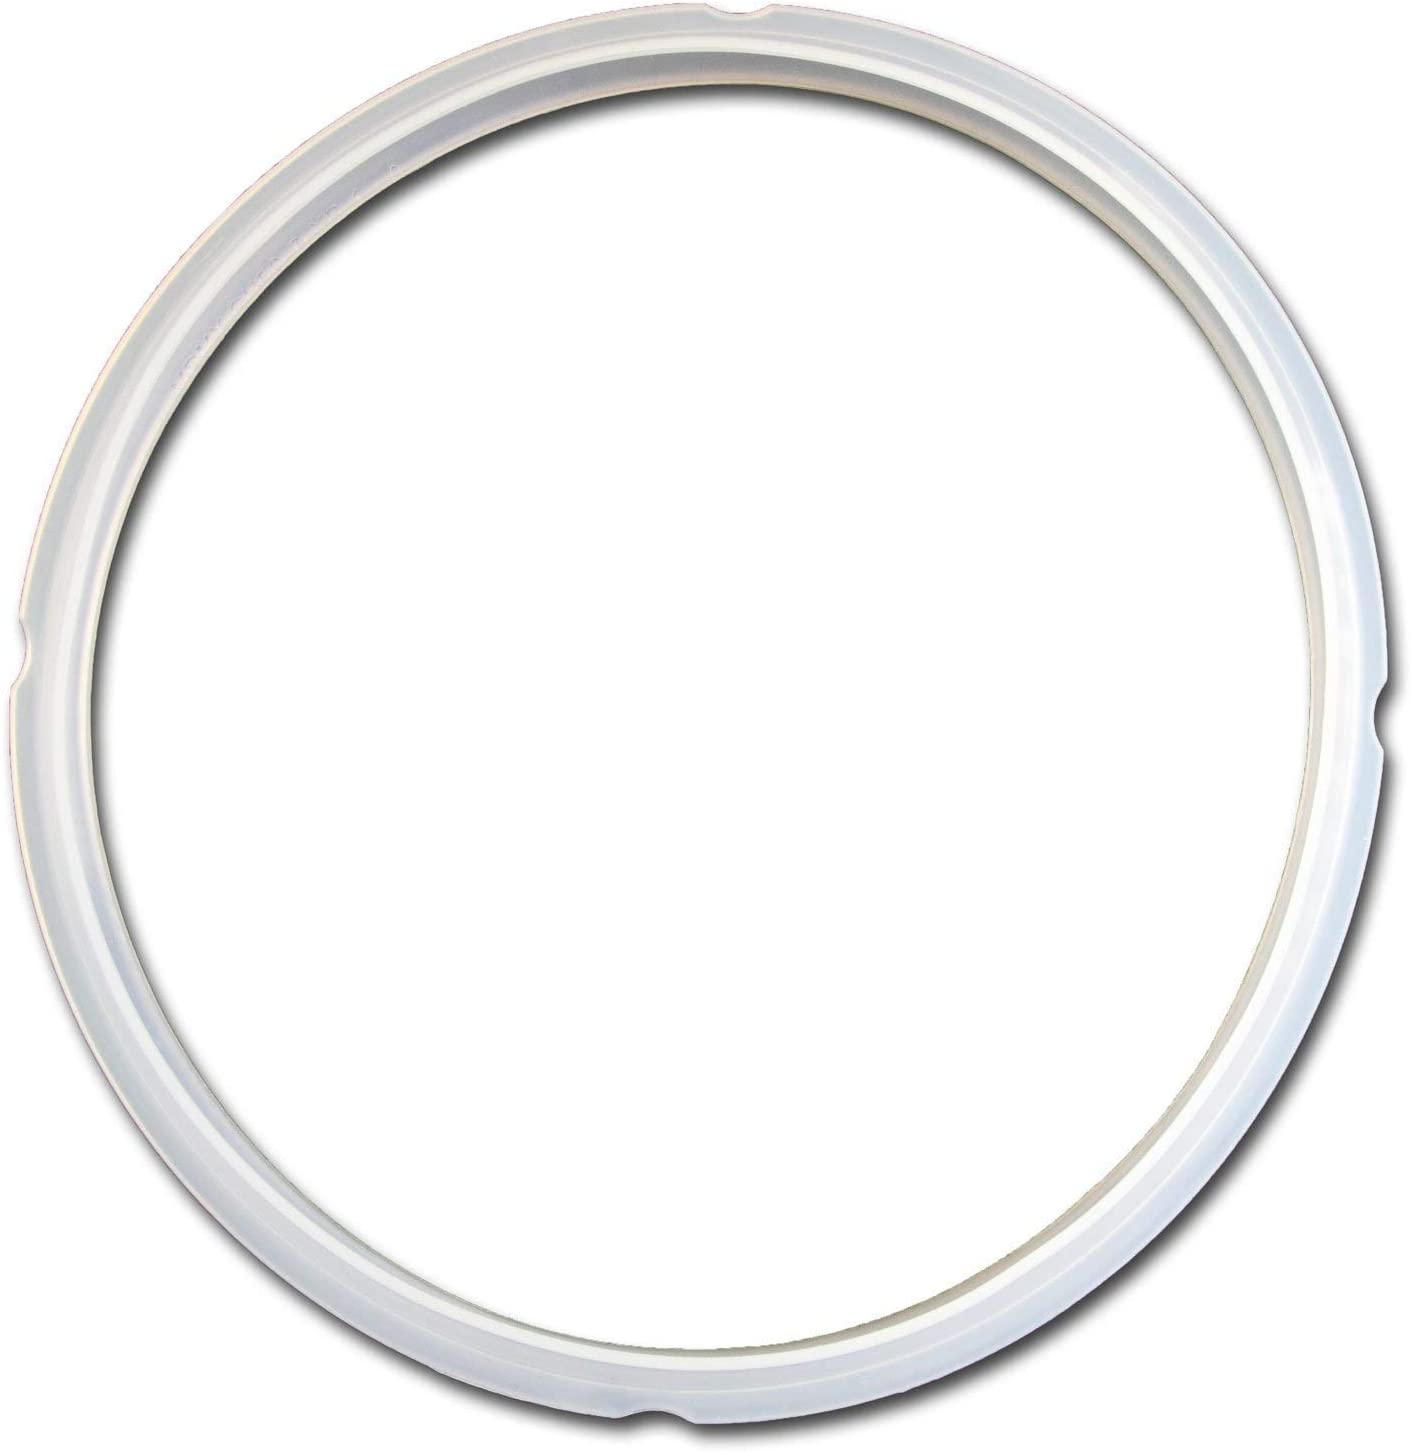 GJS Gourmet Replacement Rubber Gasket Compatible With Wolfgang Puck 8 Quart Pressure Cooker